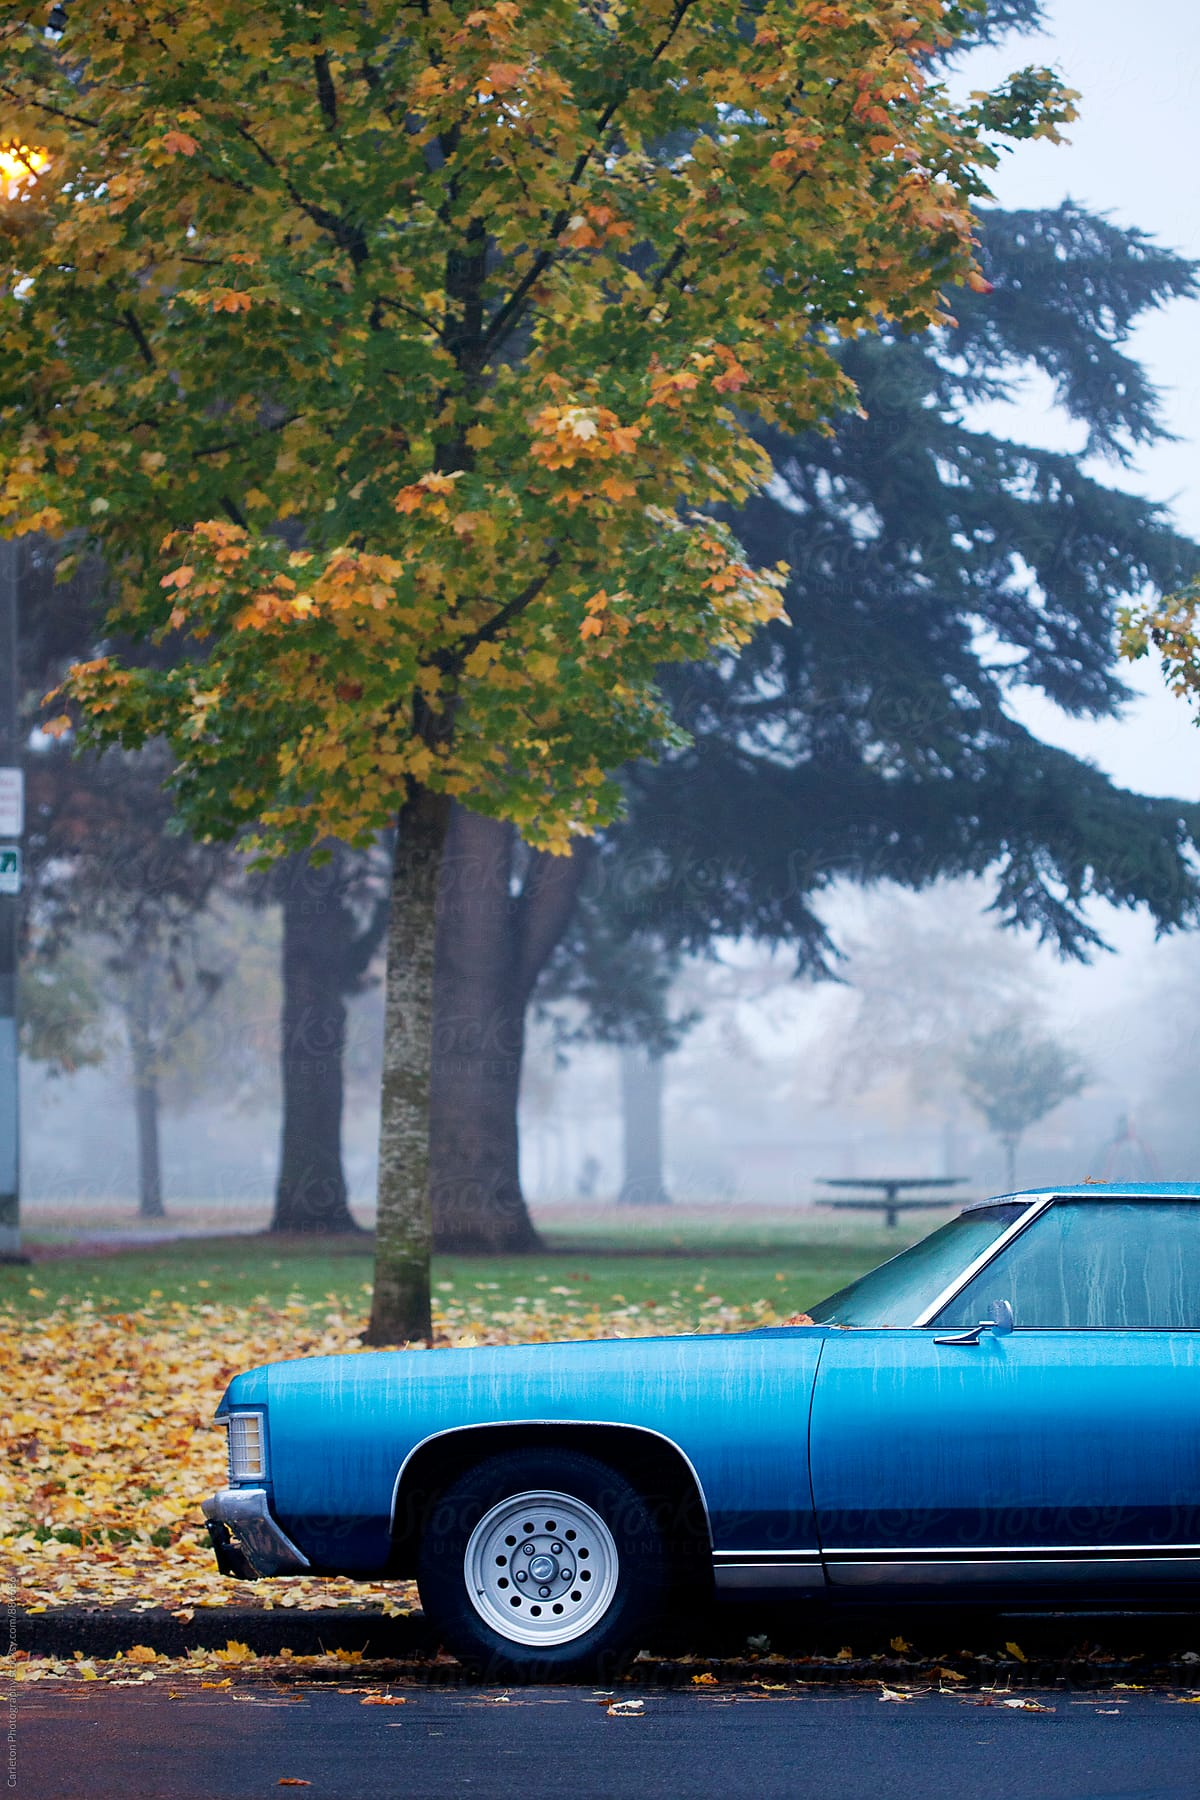 Blue Car Next To Yellow And Green Leaves On A Foggy Autumn Day In